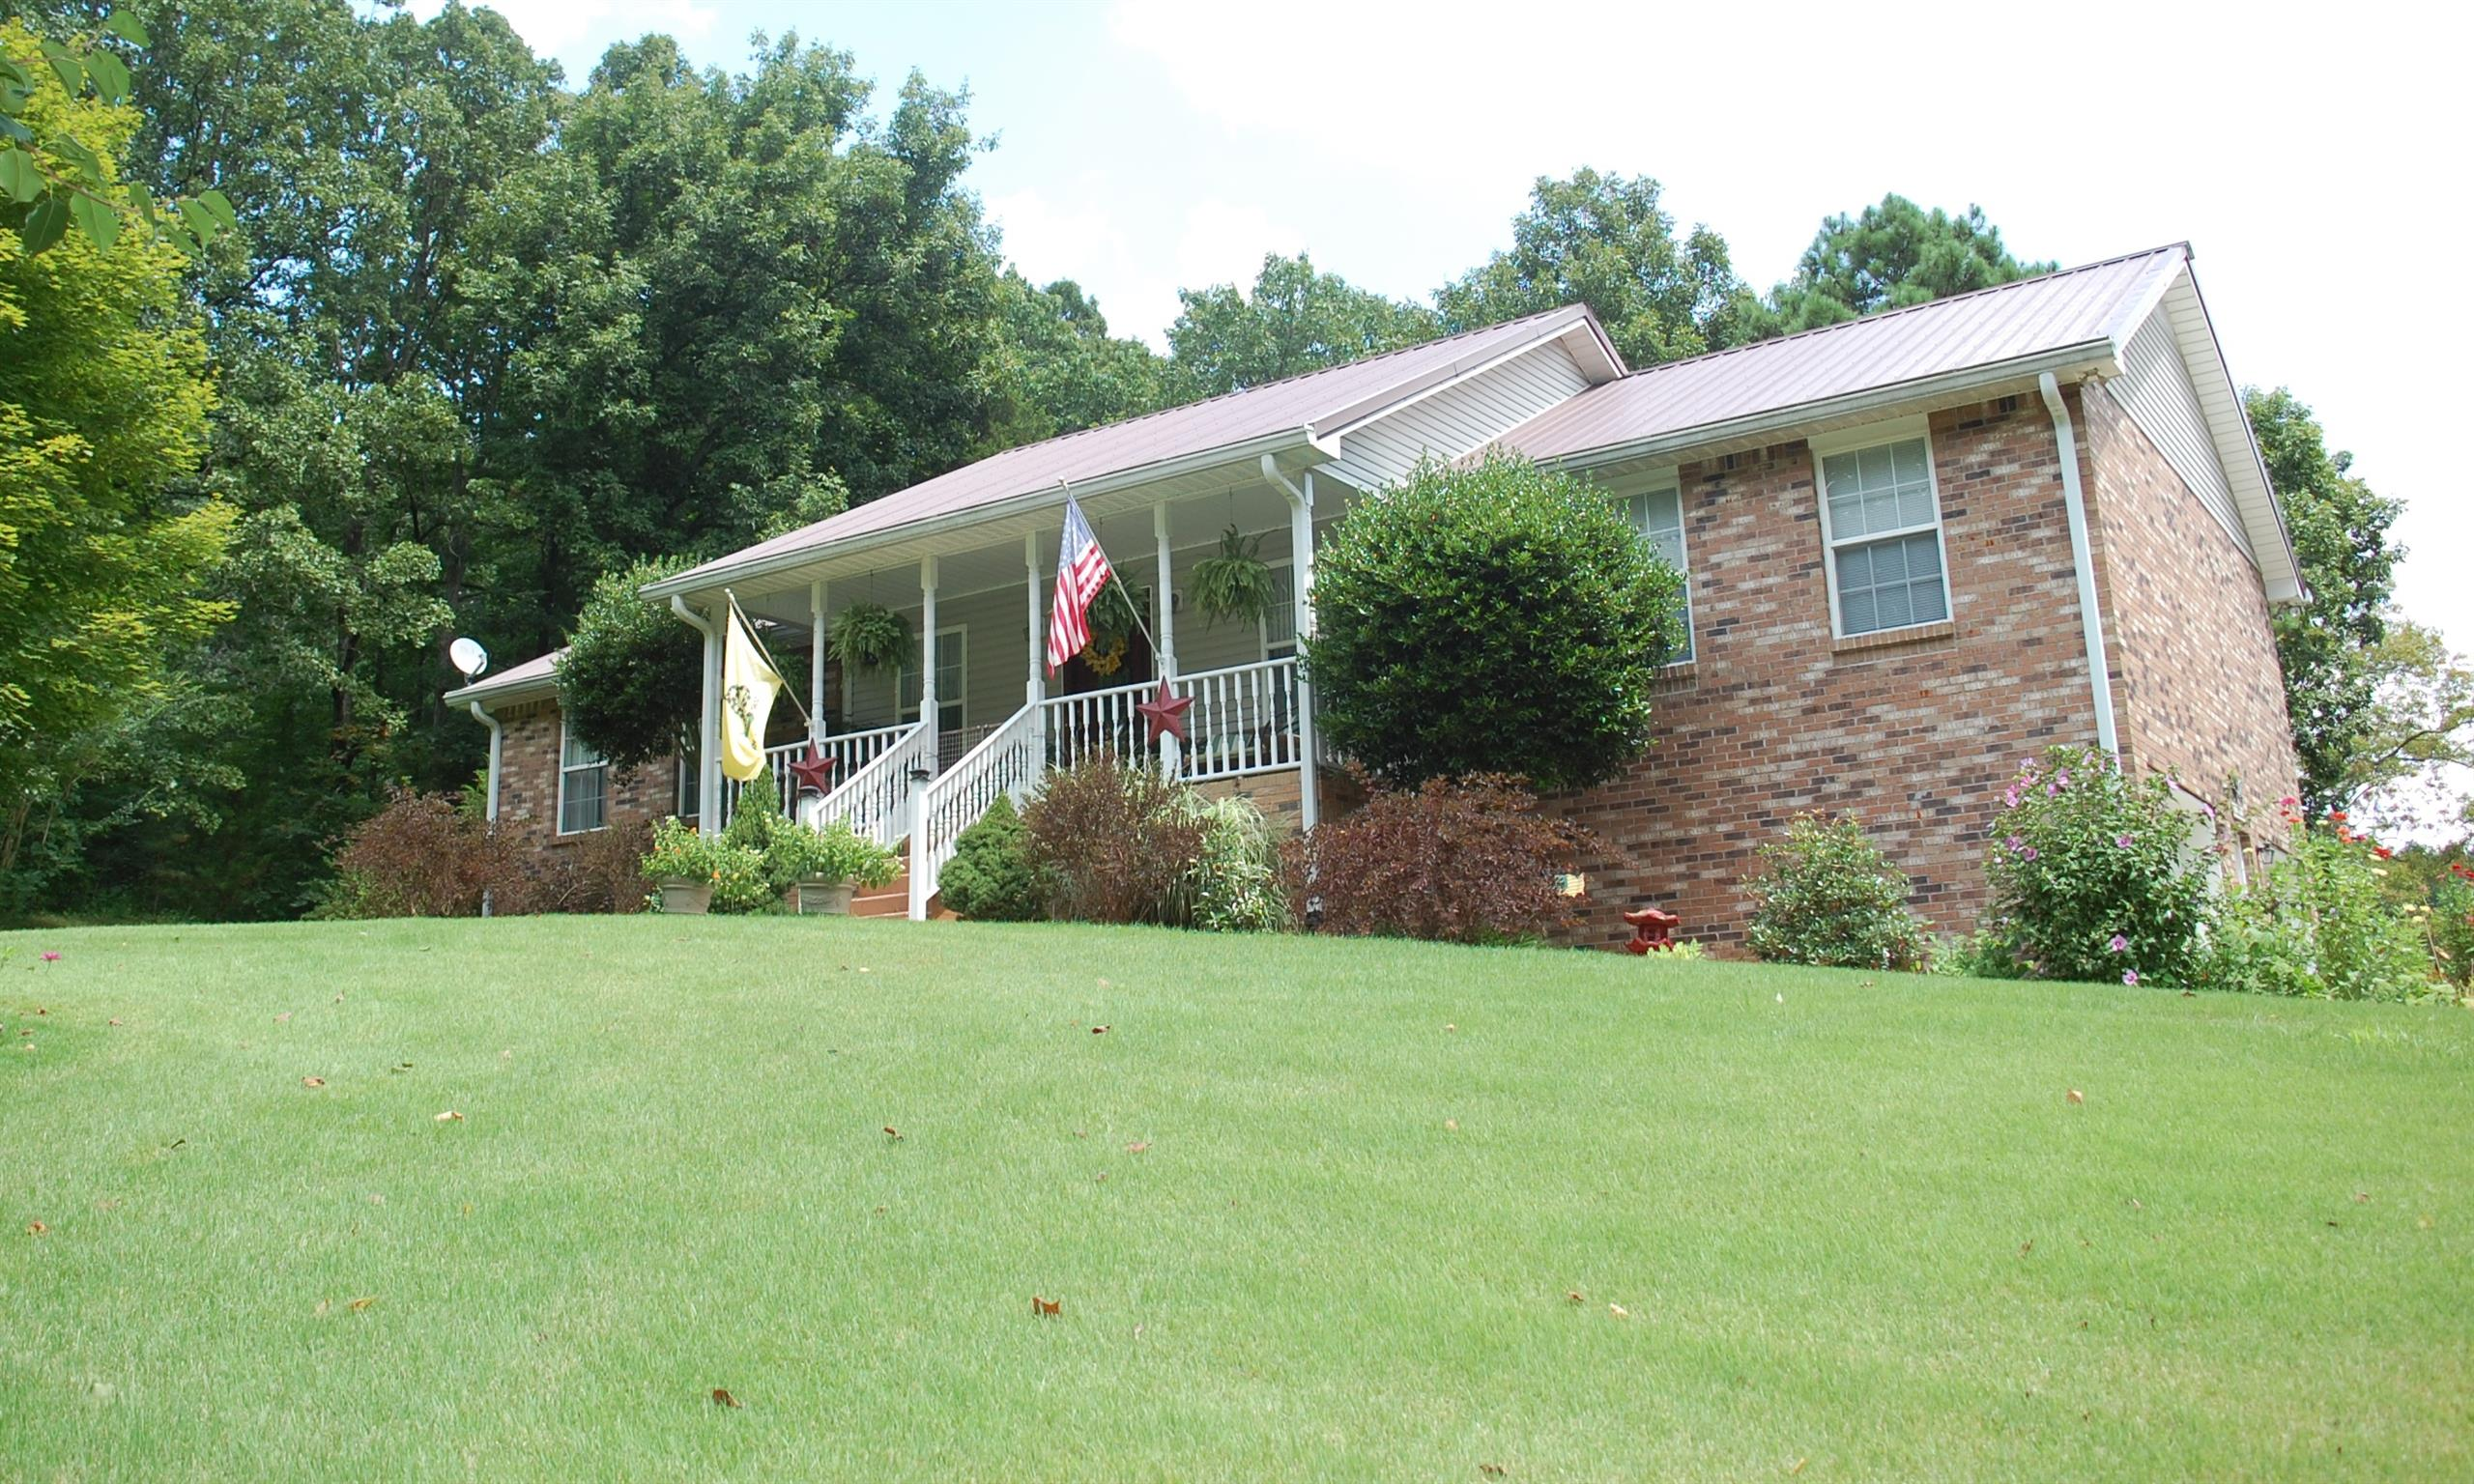 196 Big Rock Rd, Big Rock, TN 37023 - Big Rock, TN real estate listing